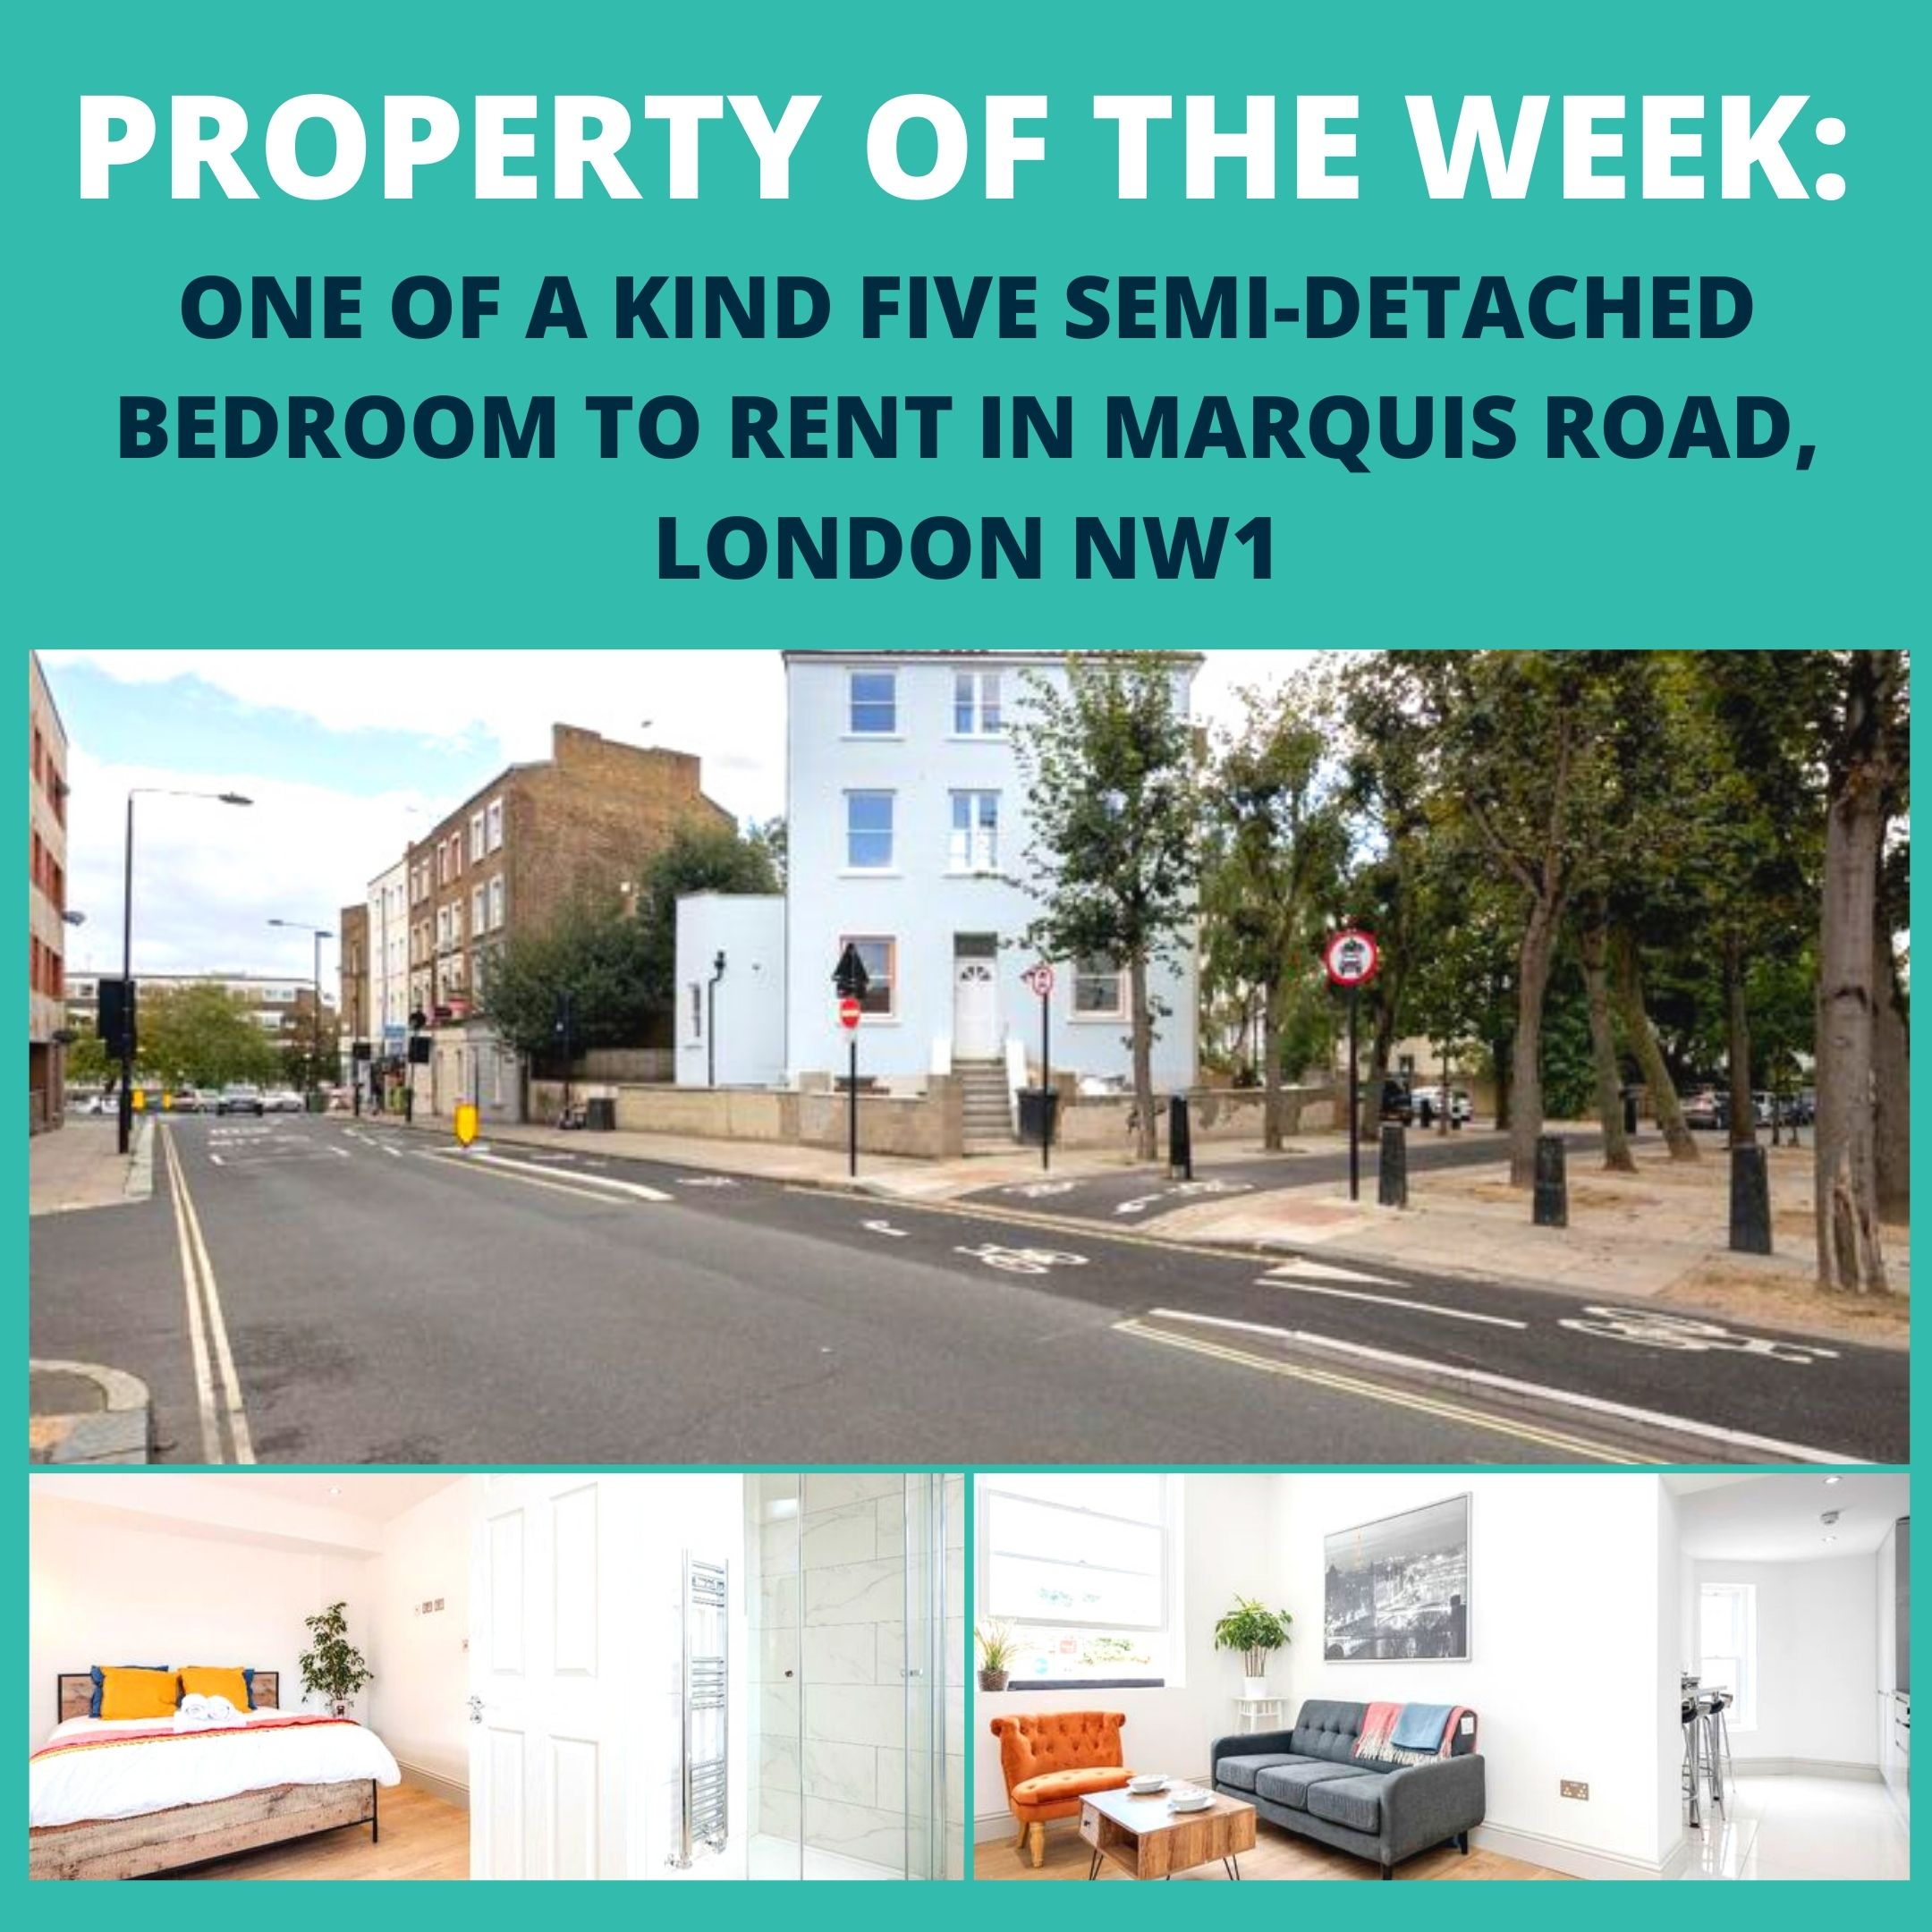 PROPERTY OF THE WEEK: ONE OF A KIND FIVE SEMI-DETACHED BEDROOM TO RENT IN MARQUIS ROAD, LONDON NW1